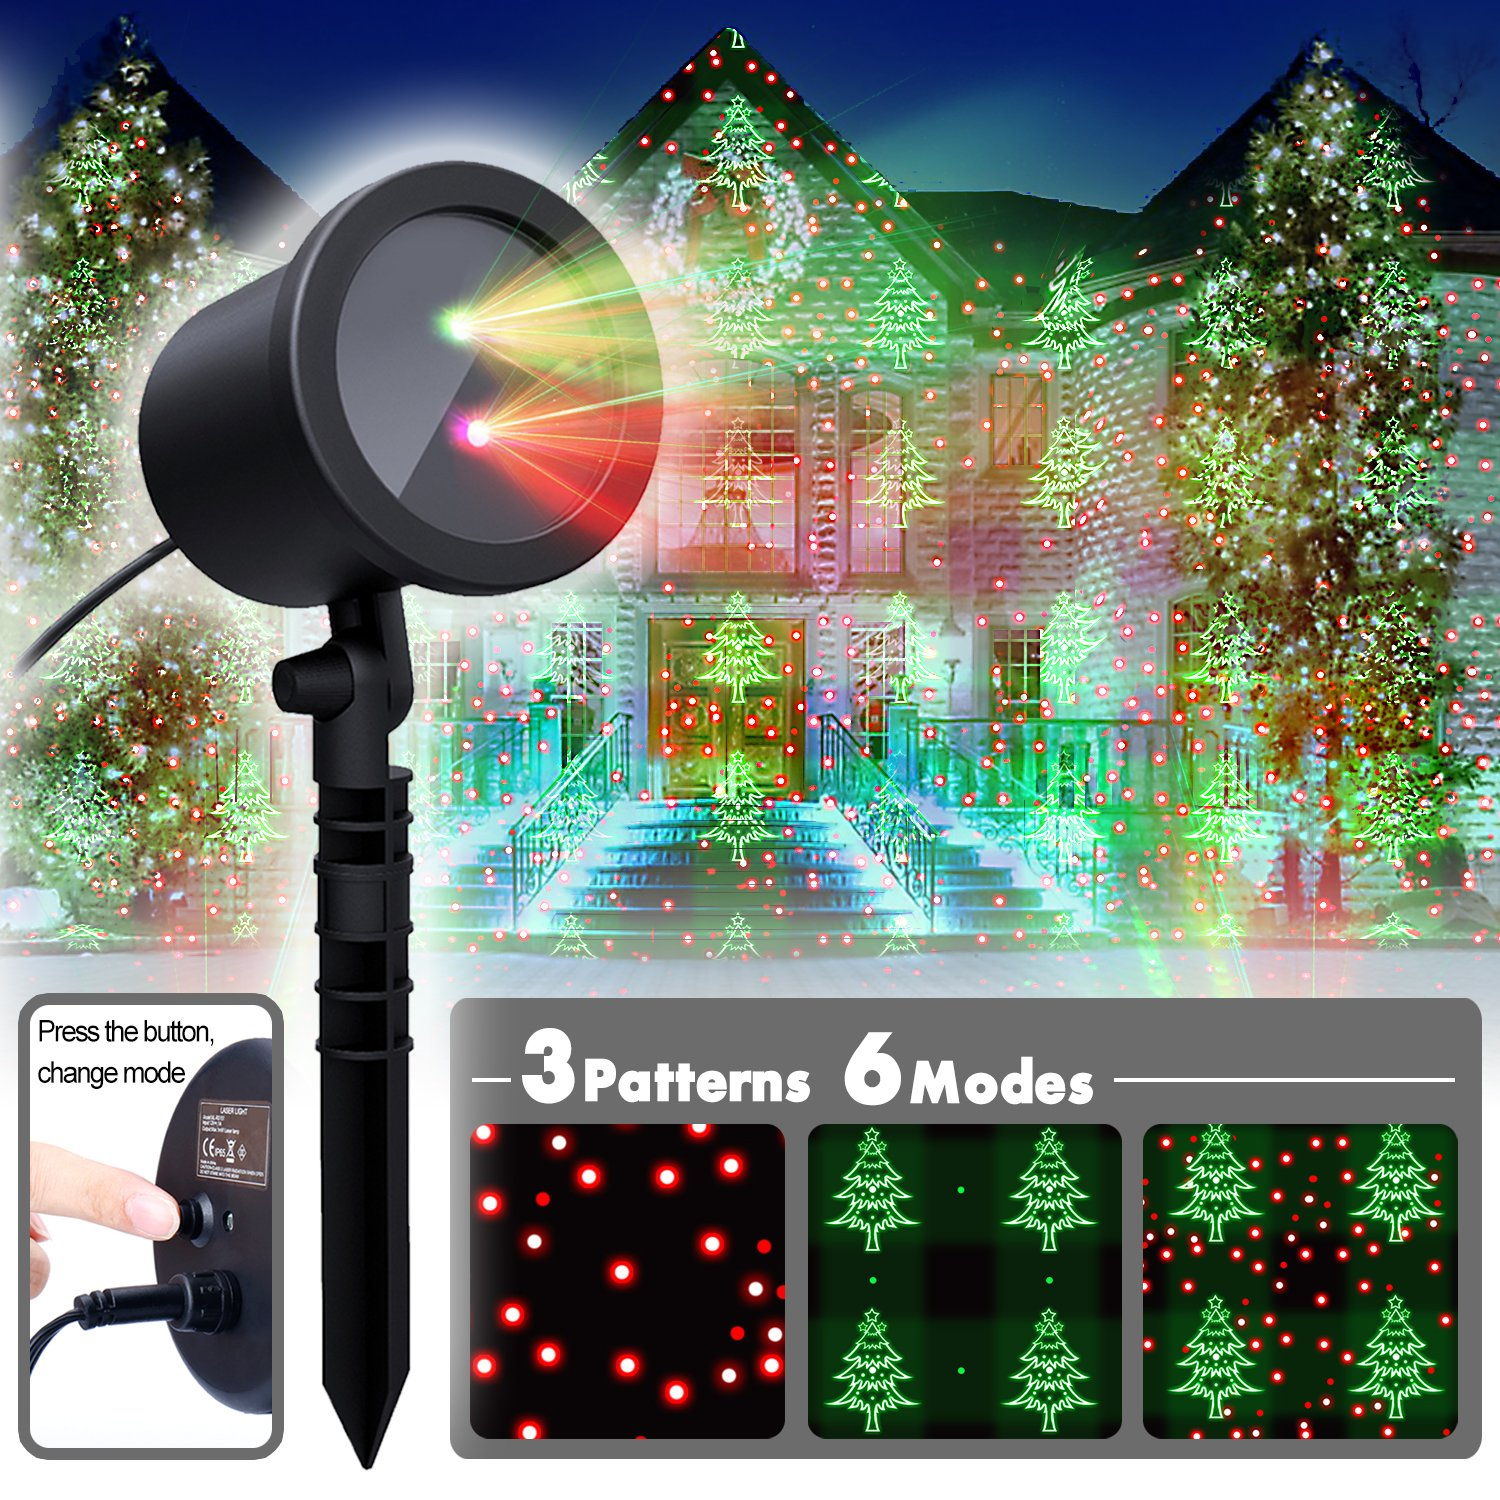 Christmas Laser Light,Red and Green Motion Laser Lights with 6 modes Choosable-Static/Flickering/Green Only/Red Only/Green&Red Both, Landscape Projector for Holiday,Especially Christmas Decorations